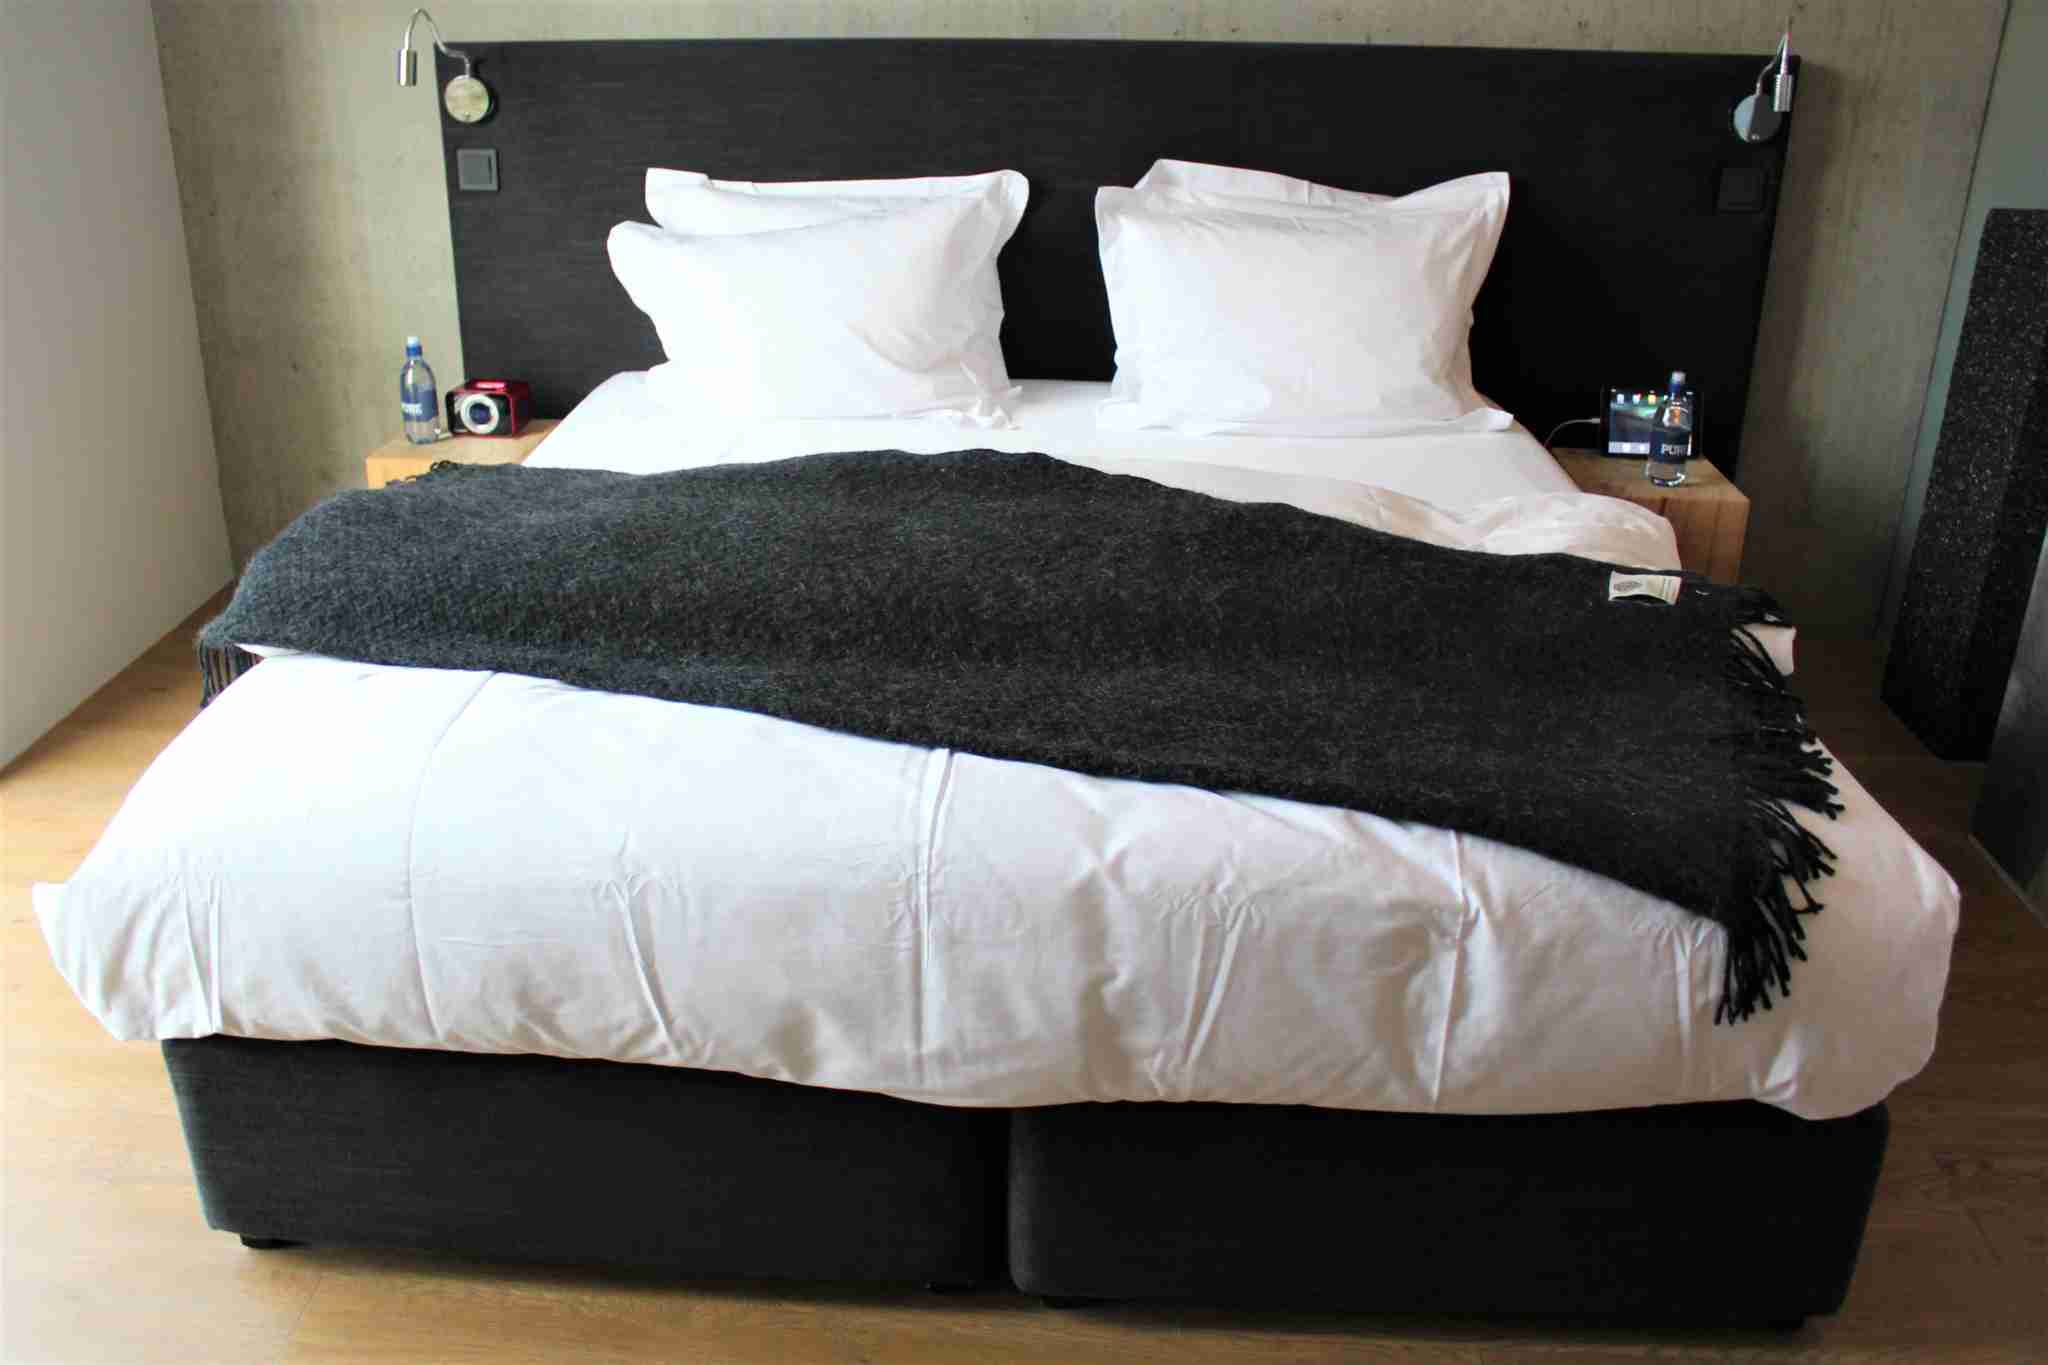 The double bed could be broken down into two single beds.